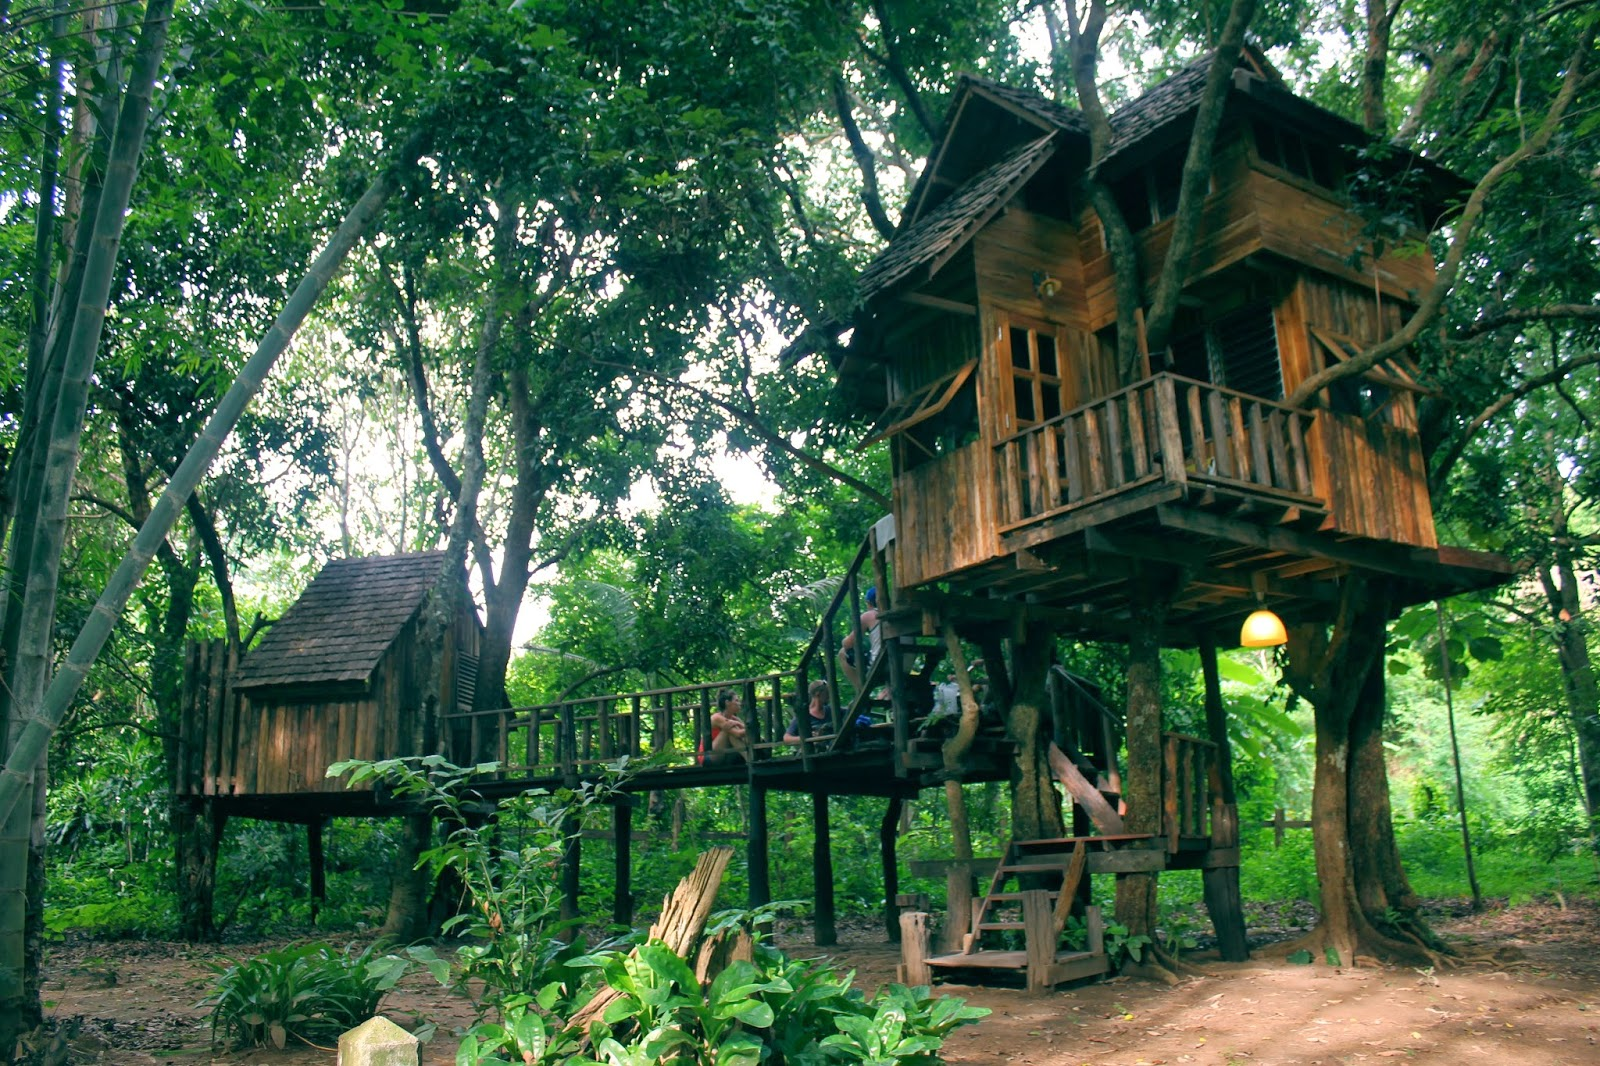 Market of Eden Rabeang Pasak Treehouse Resort